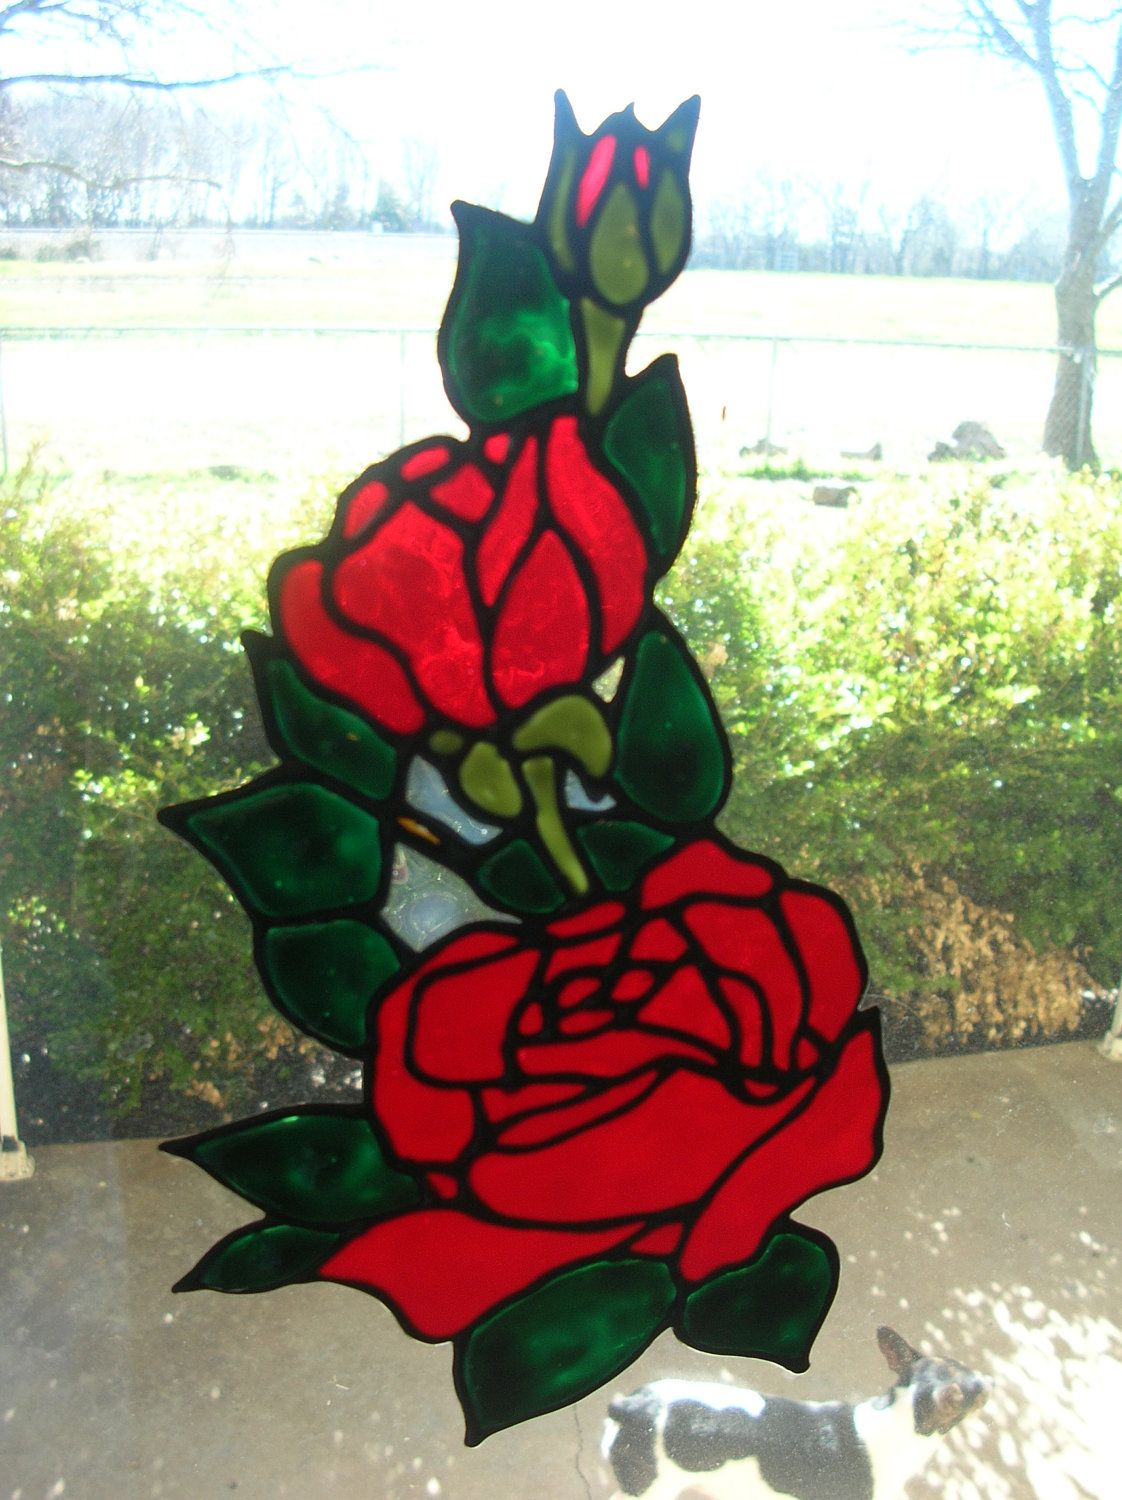 Rose And Bud 4 Corner Stained Glass Window Clings 2100 Via Etsy